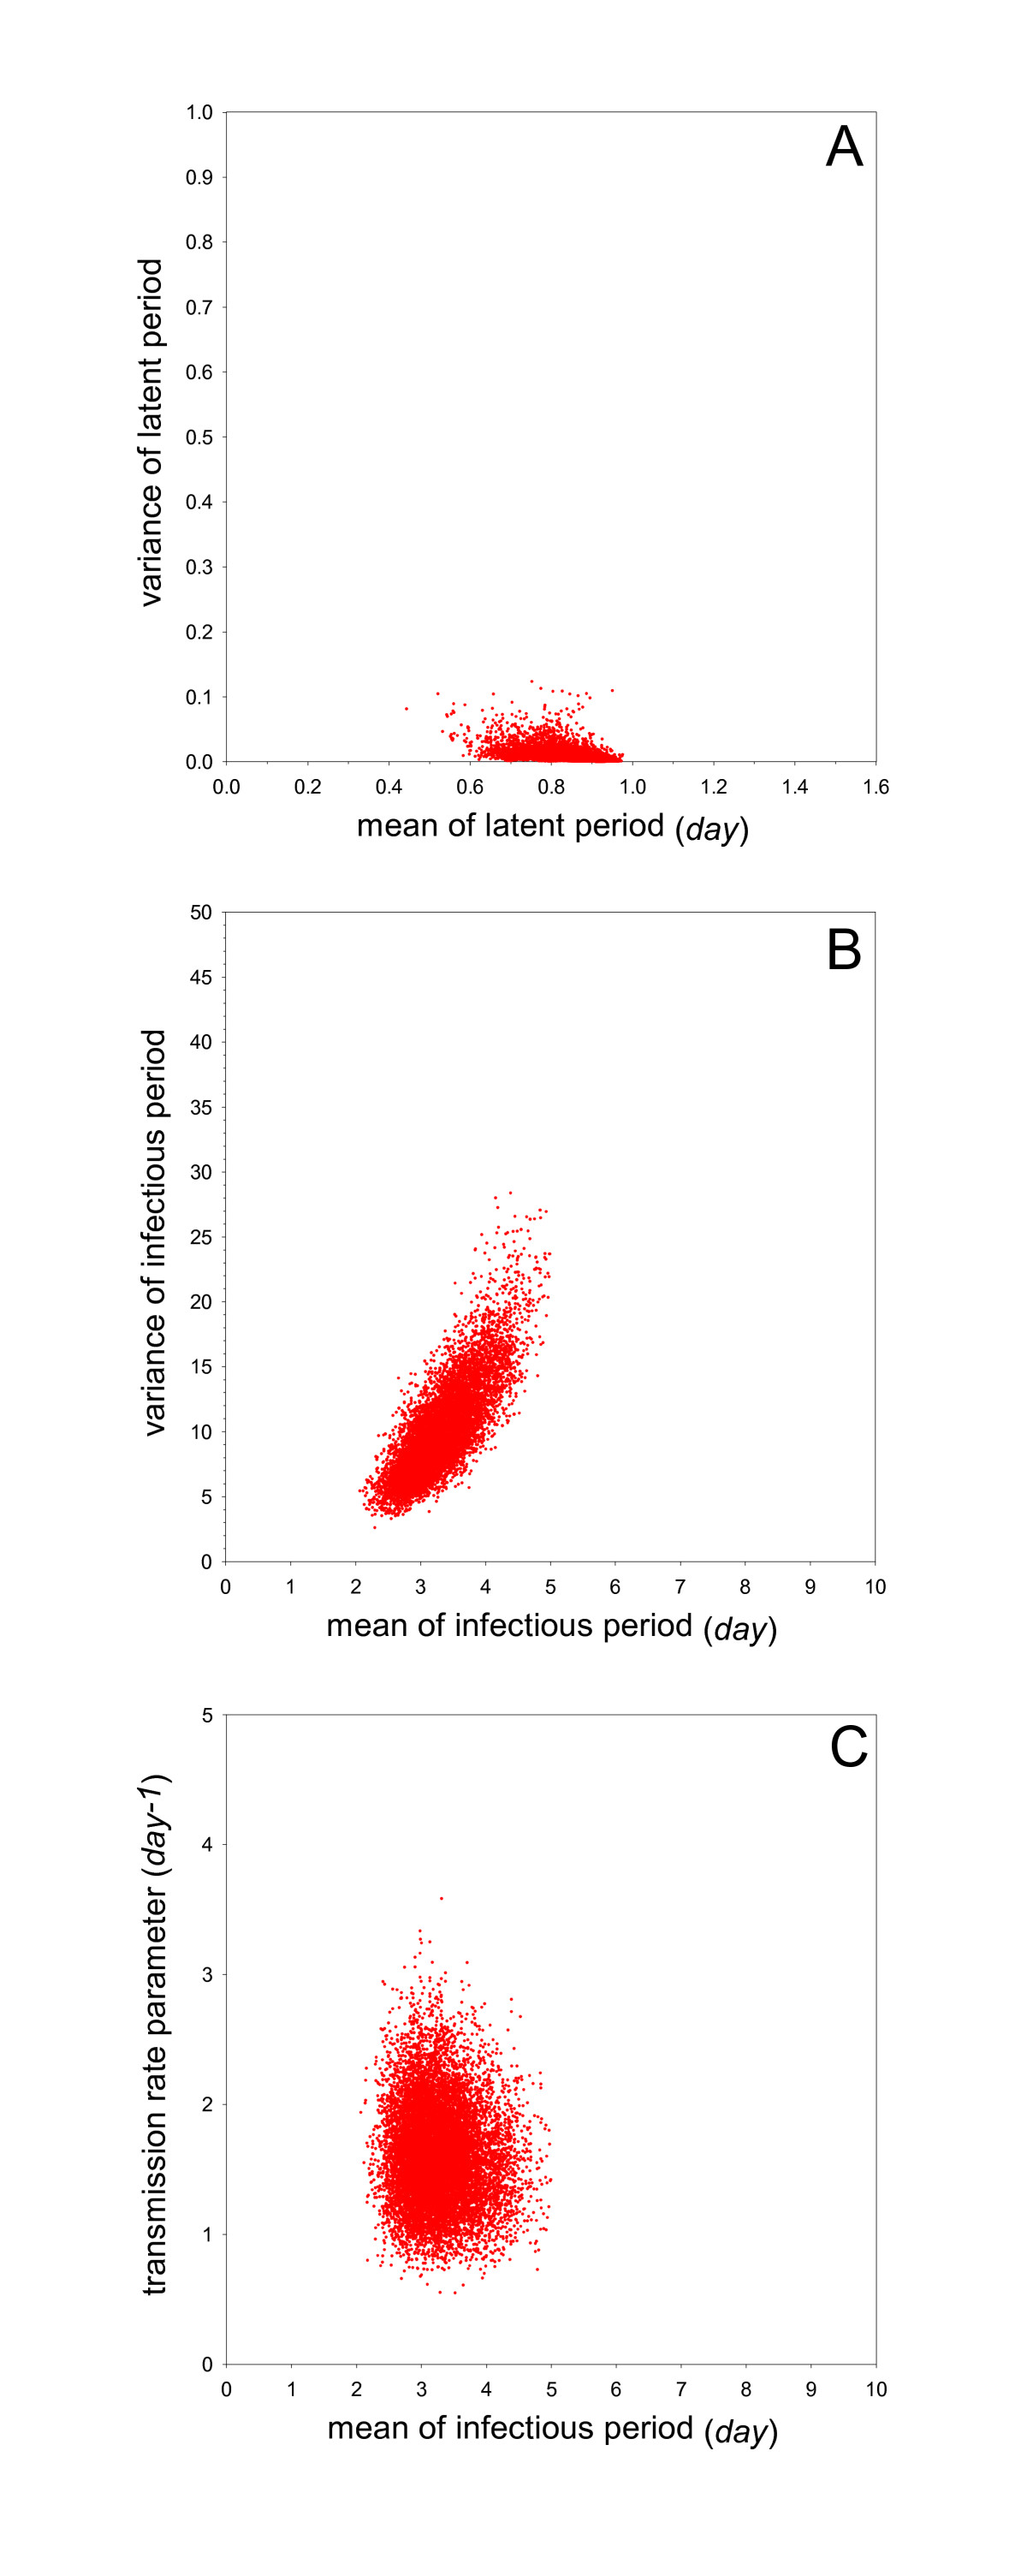 https://static-content.springer.com/image/art%3A10.1186%2F1297-9716-42-74/MediaObjects/13567_2010_Article_74_Fig2_HTML.jpg